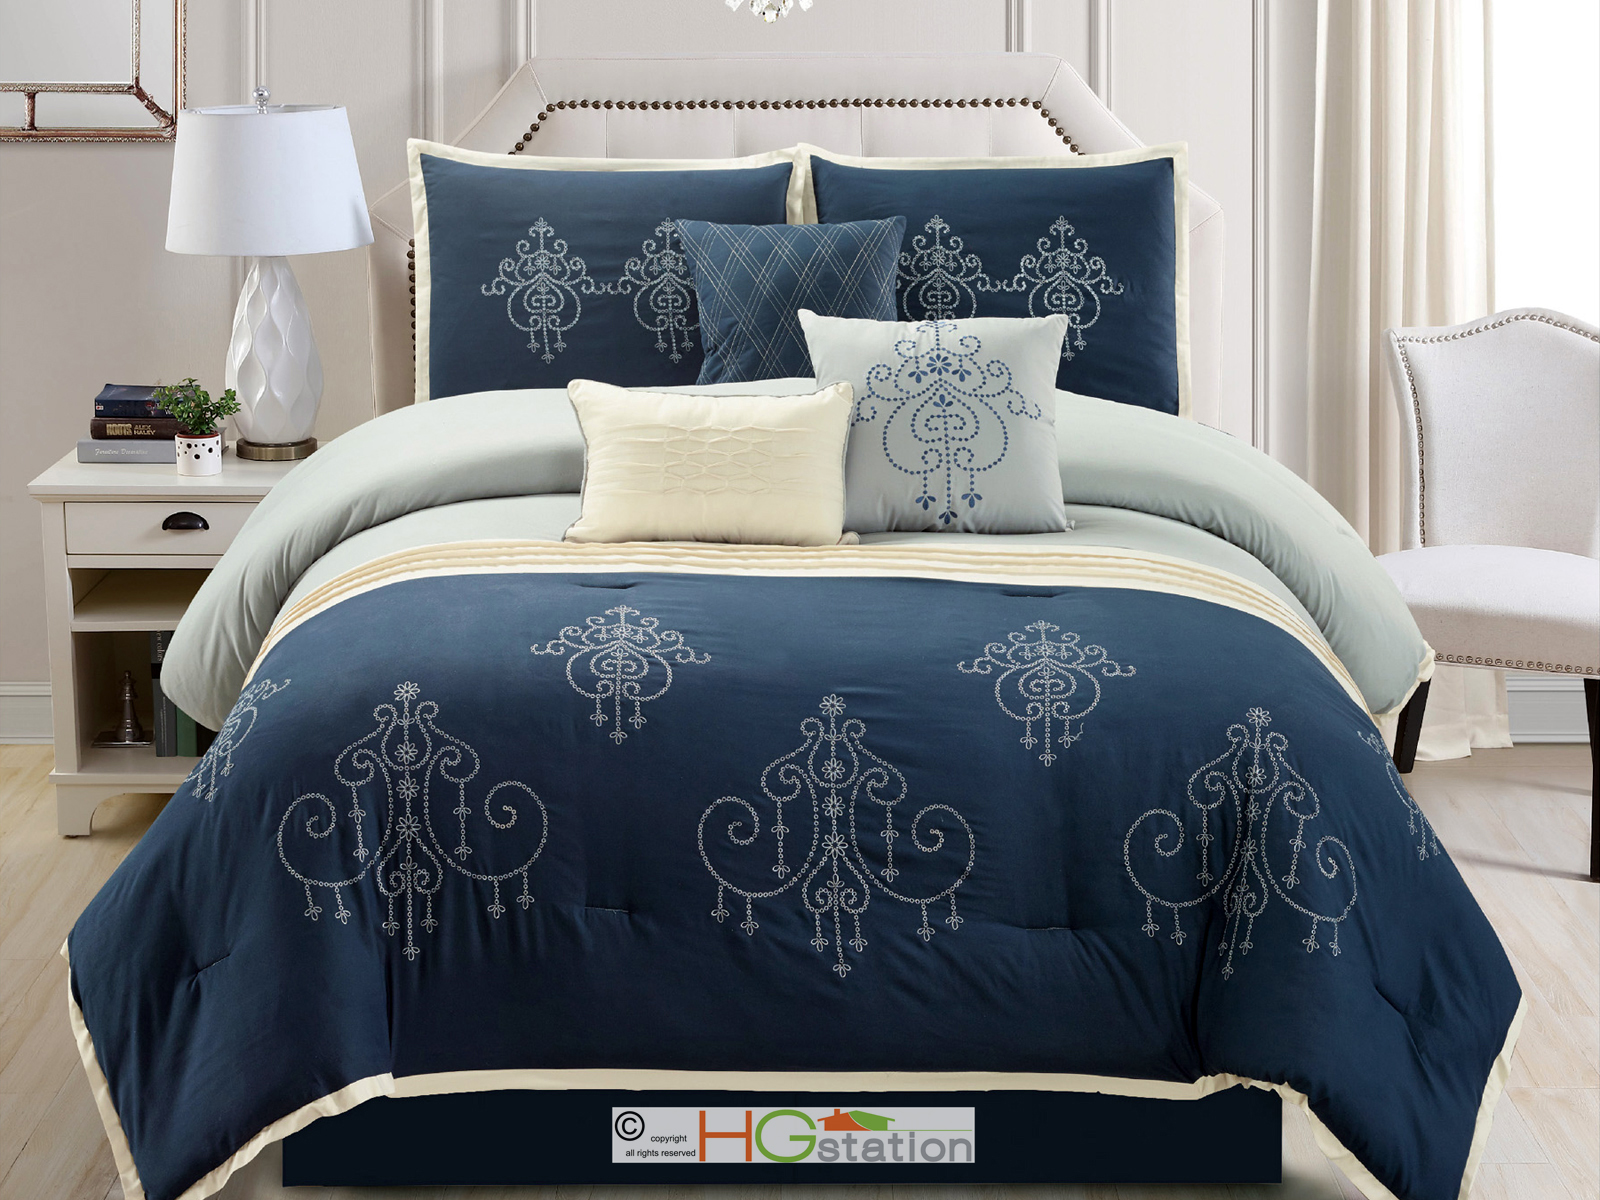 7-P Chandelier Scroll Damask Embroidery Comforter Set Blue Light Gray Ivory King 642709896494